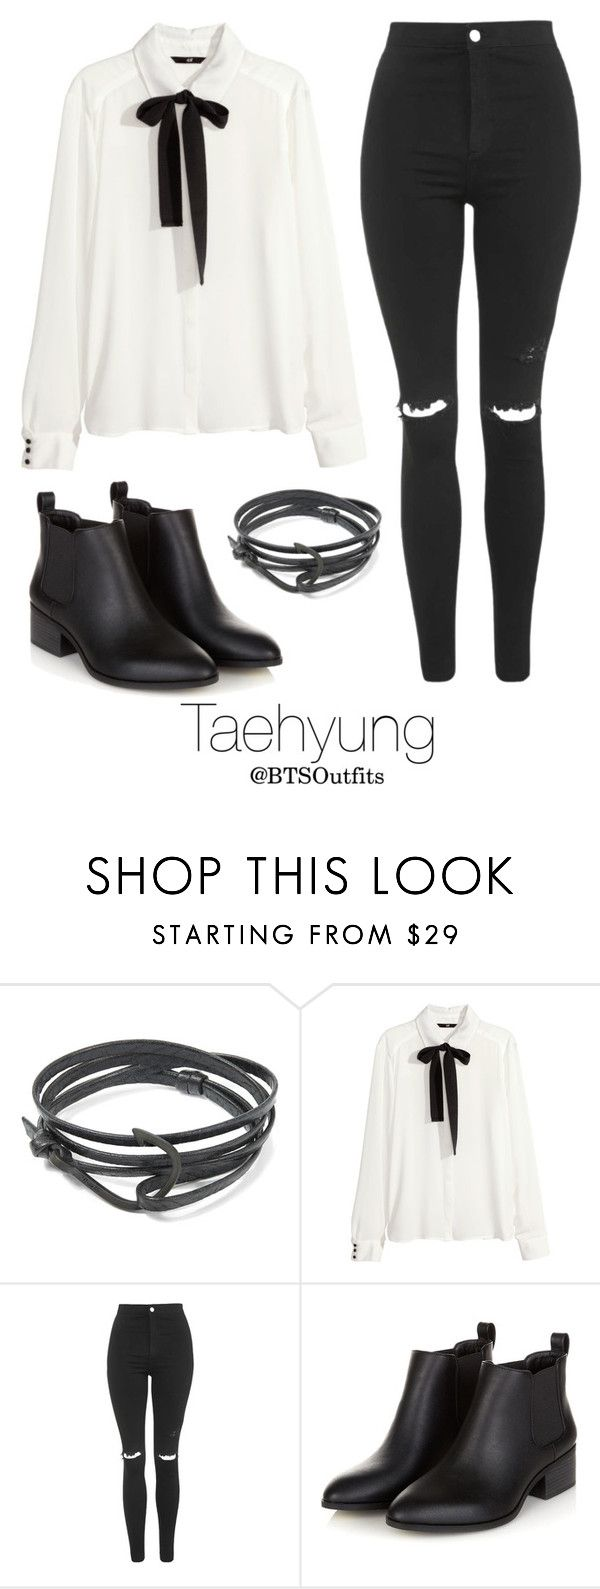 """Young Forever Inspired: Taehyung"" by btsoutfits ❤ liked on Polyvore featuring MIANSAI, H&M and Topshop"